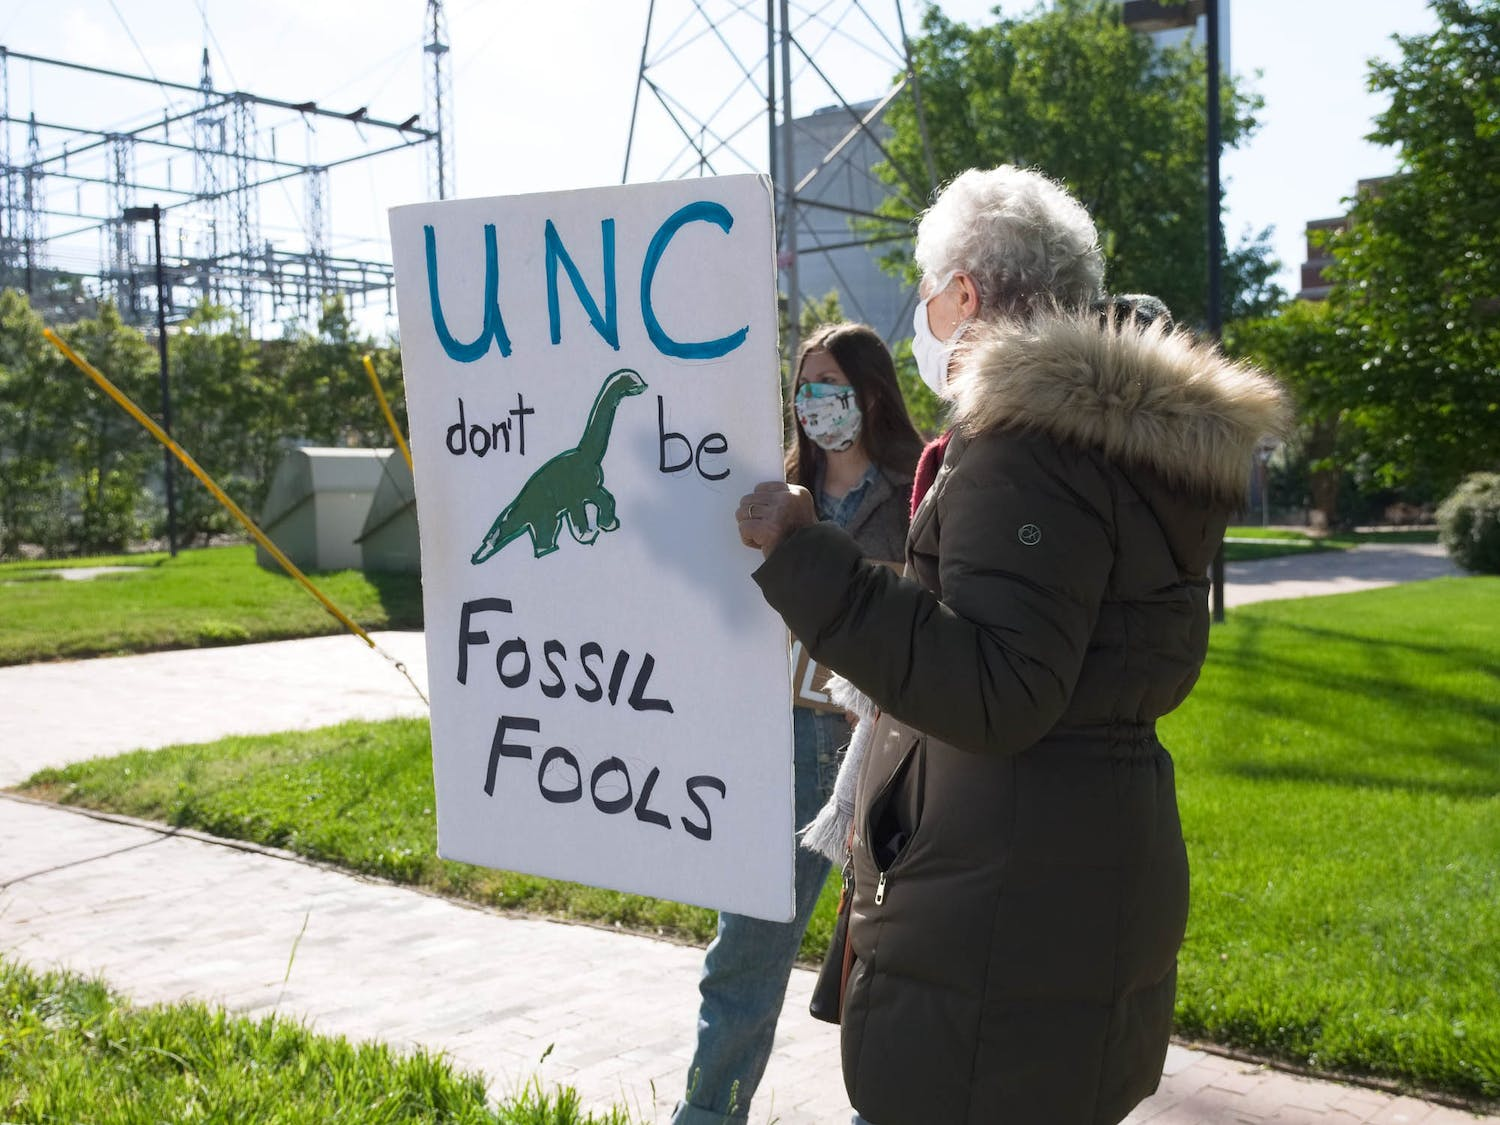 Amelia Covington and Judith Lechner hold up signs outside of UNC's coal plant on Friday, Apr. 23, 2021.